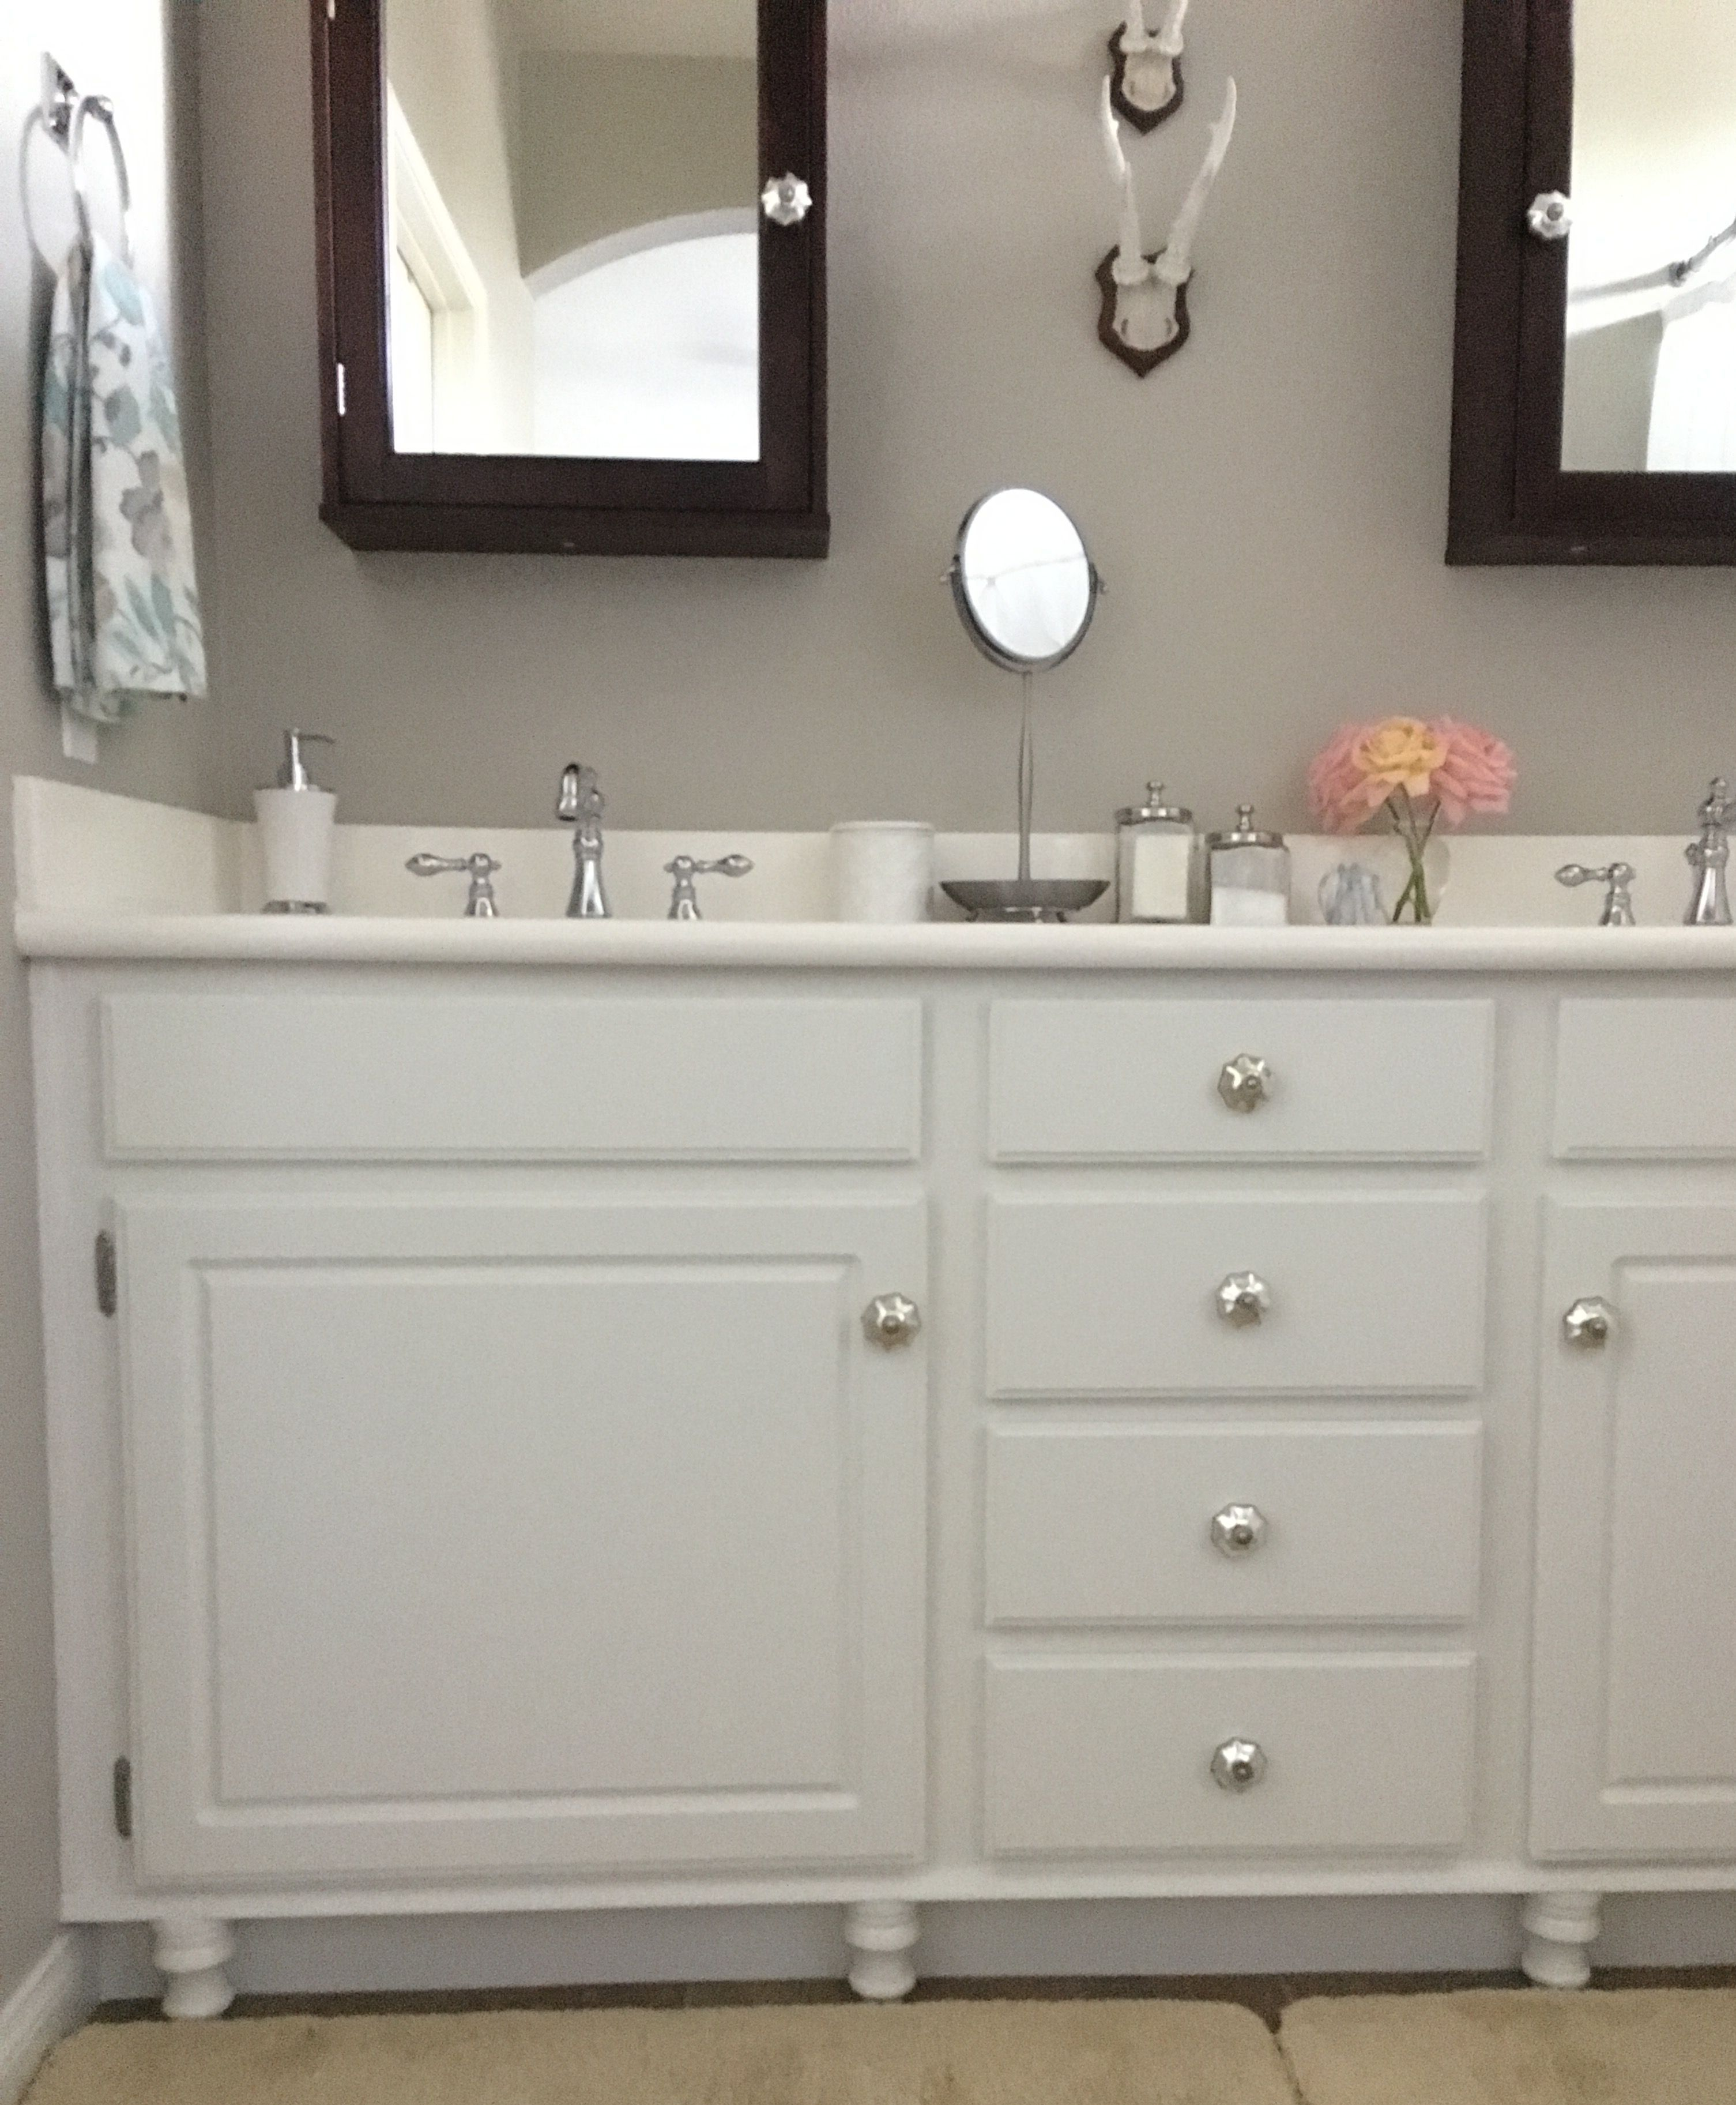 Adding Wood Feet To A Bathroom Vanity Bathroom Vanity Bathrooms